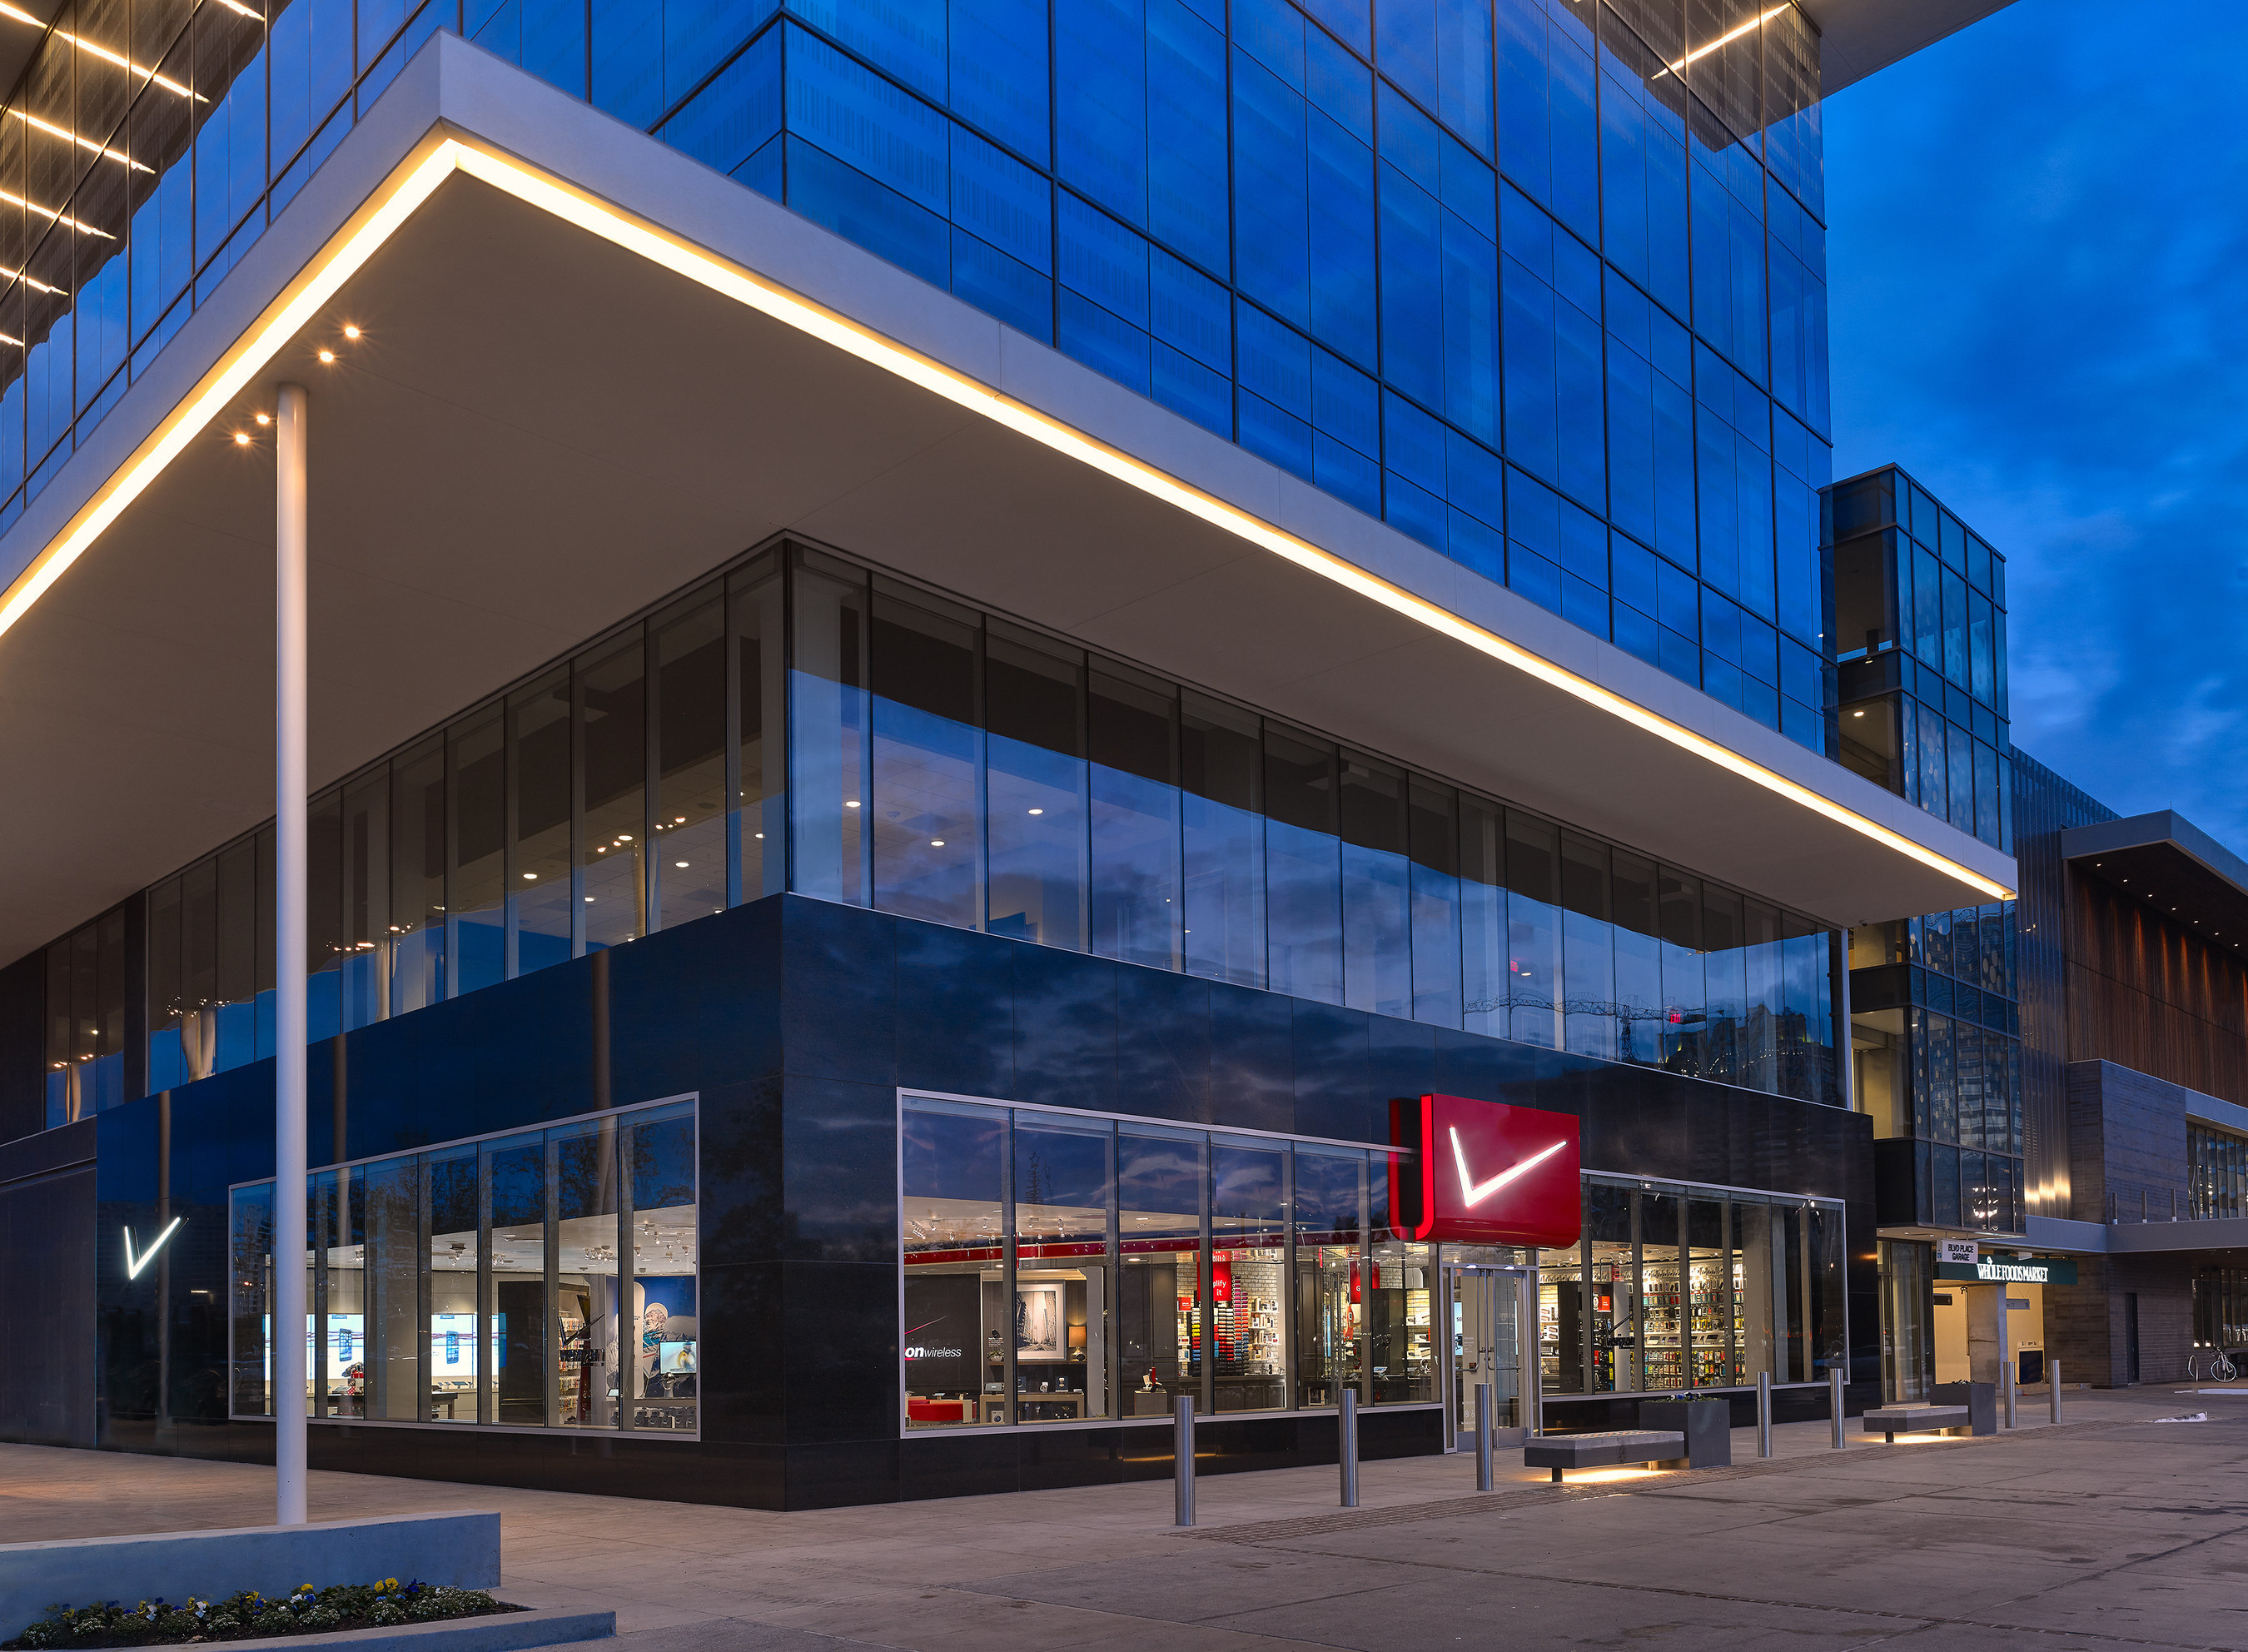 The Verizon Destination Store opened in Houston, Texas today at BLVD Place shopping center. Verizon is taking ...